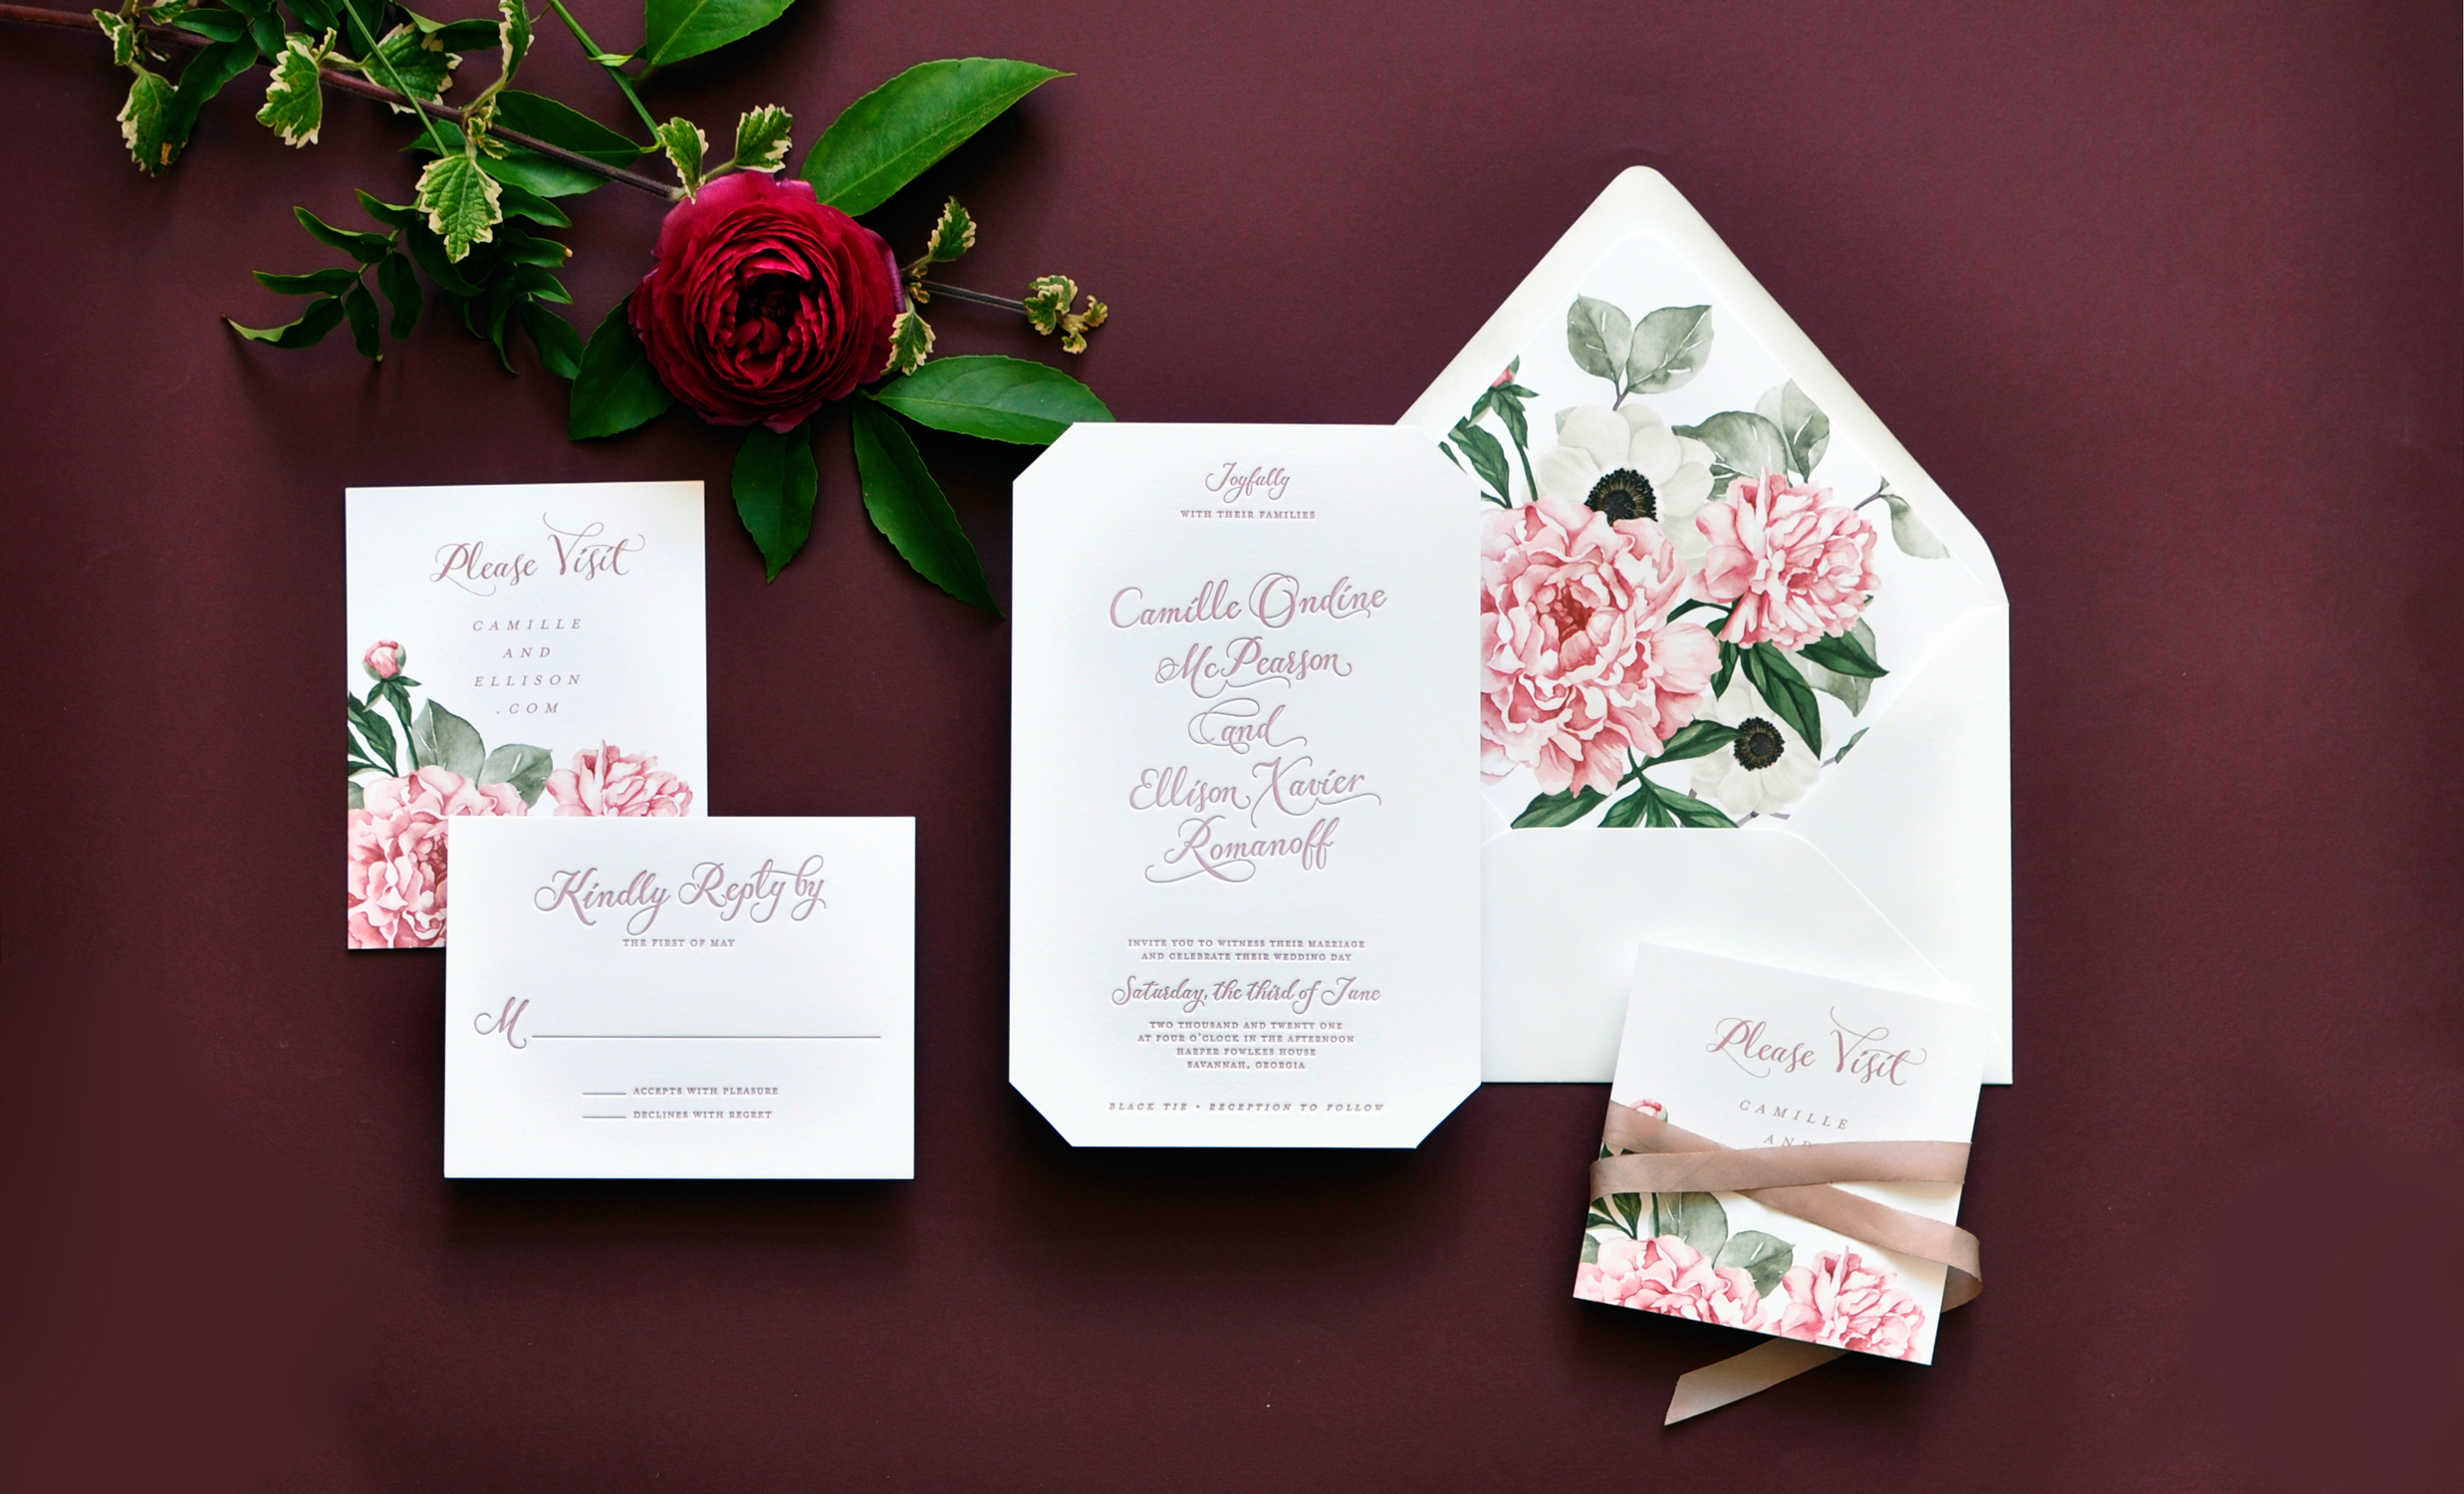 Camille 2-ply Letterpress wedding invitation features beautiful peony and anemone floral bouquet on the envelope liner.